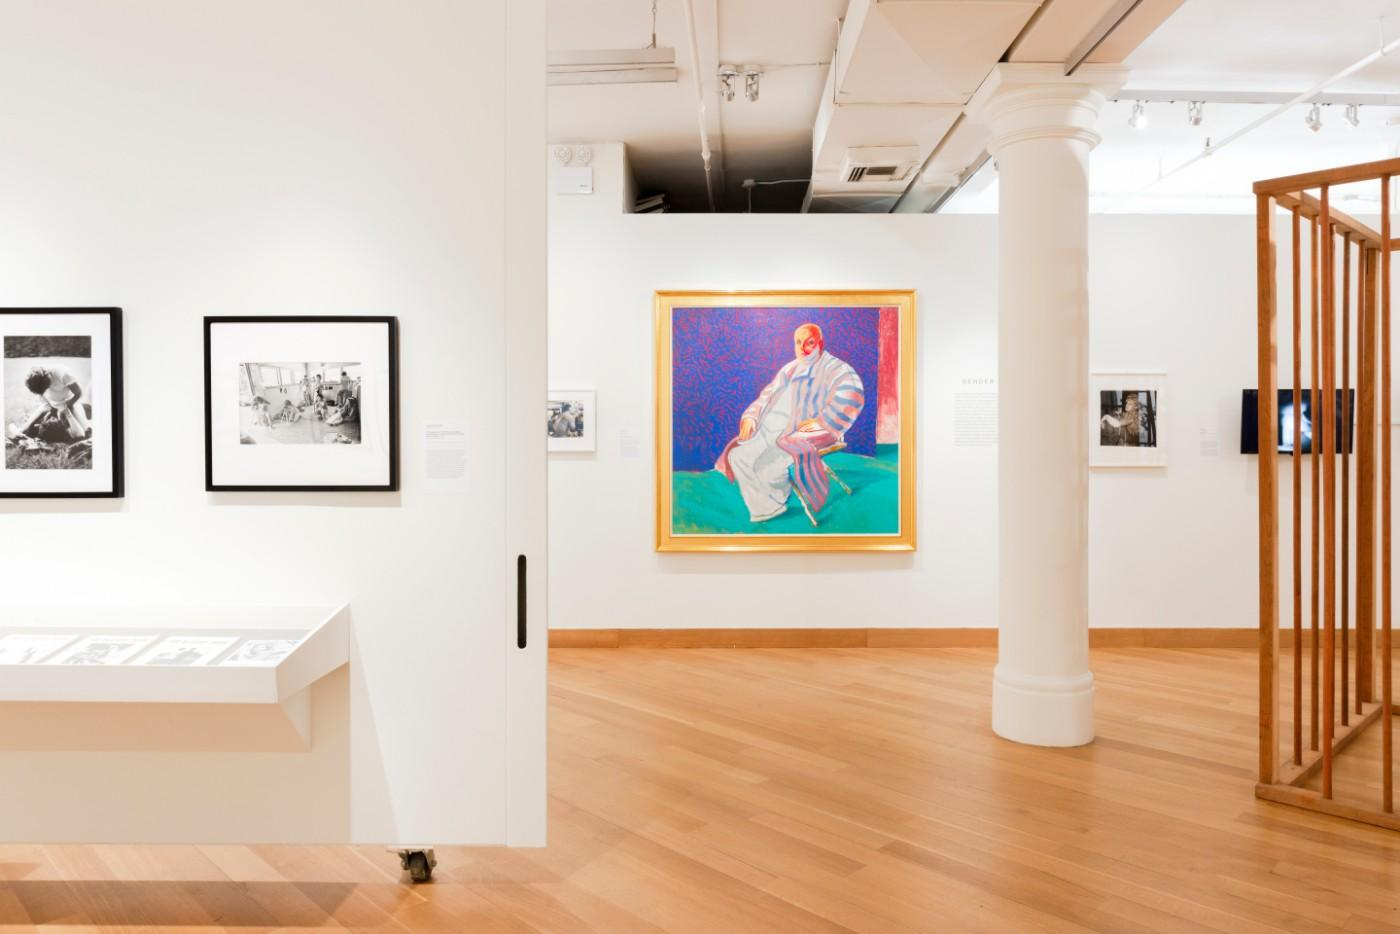 Installation view, Art after Stonewall, Leslie-Lohman Museum of Gay and Lesbian Art